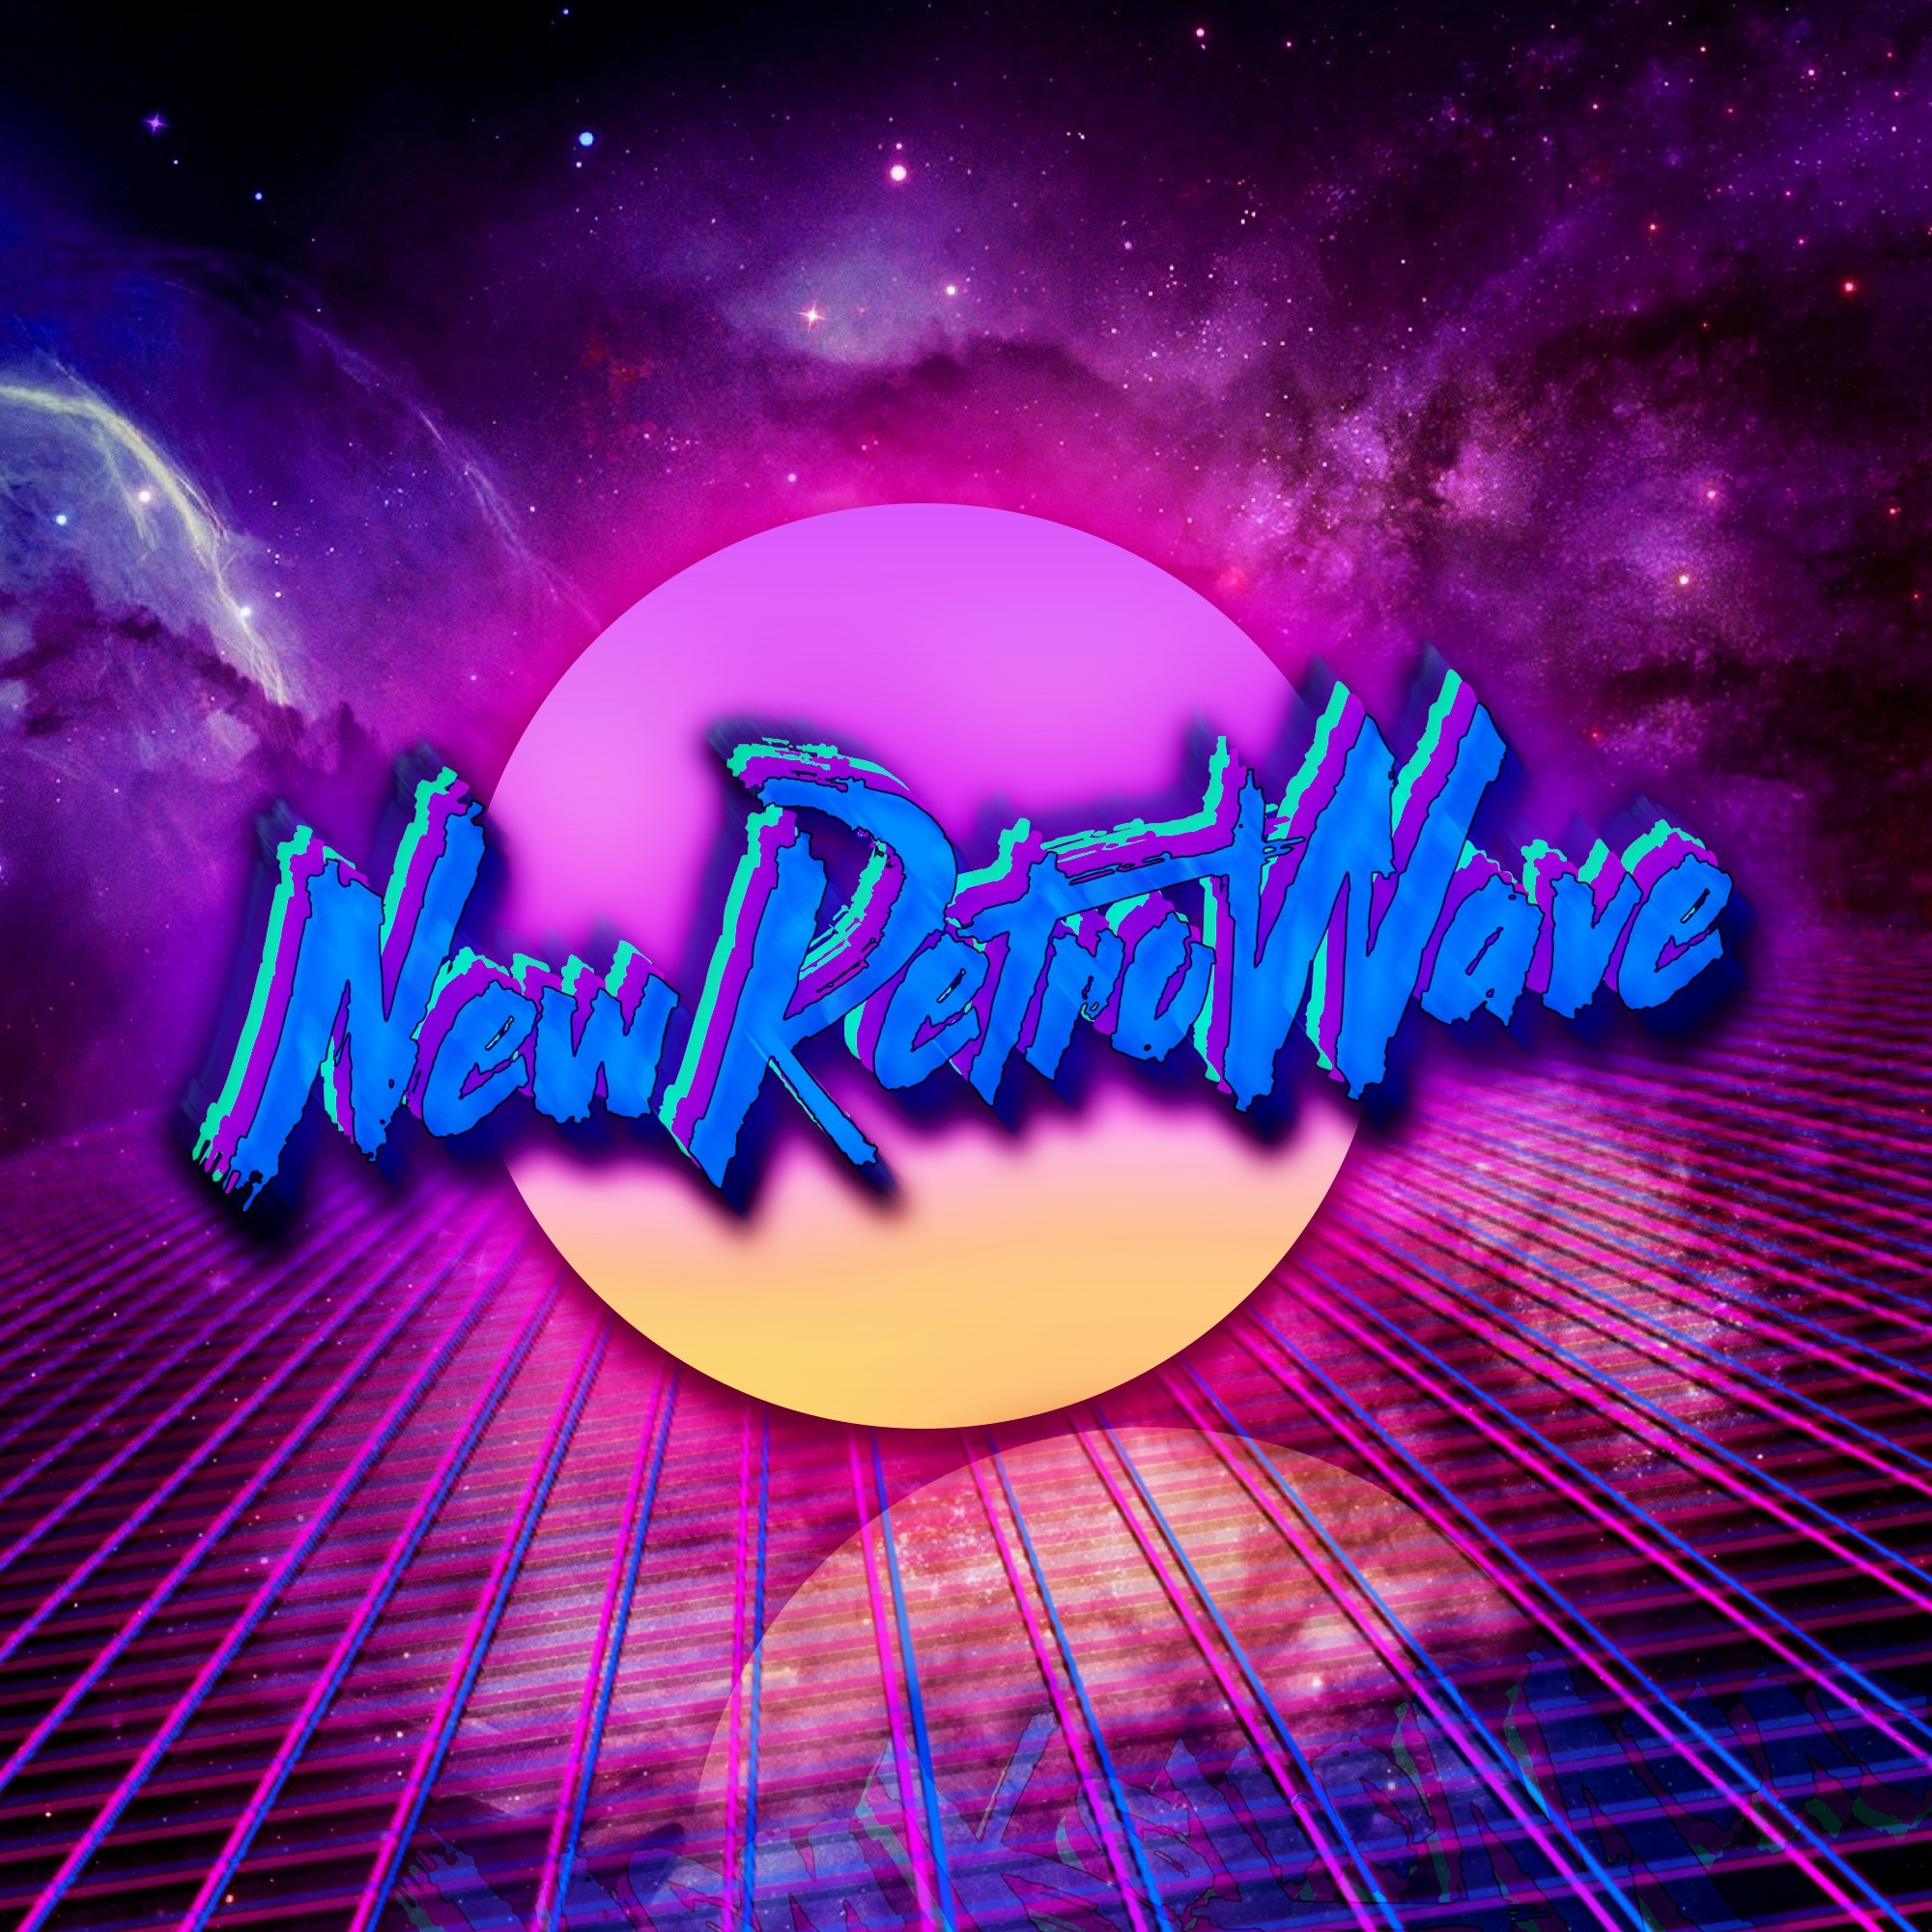 Synthwave wallpaper 80 images - Space 80s wallpaper ...